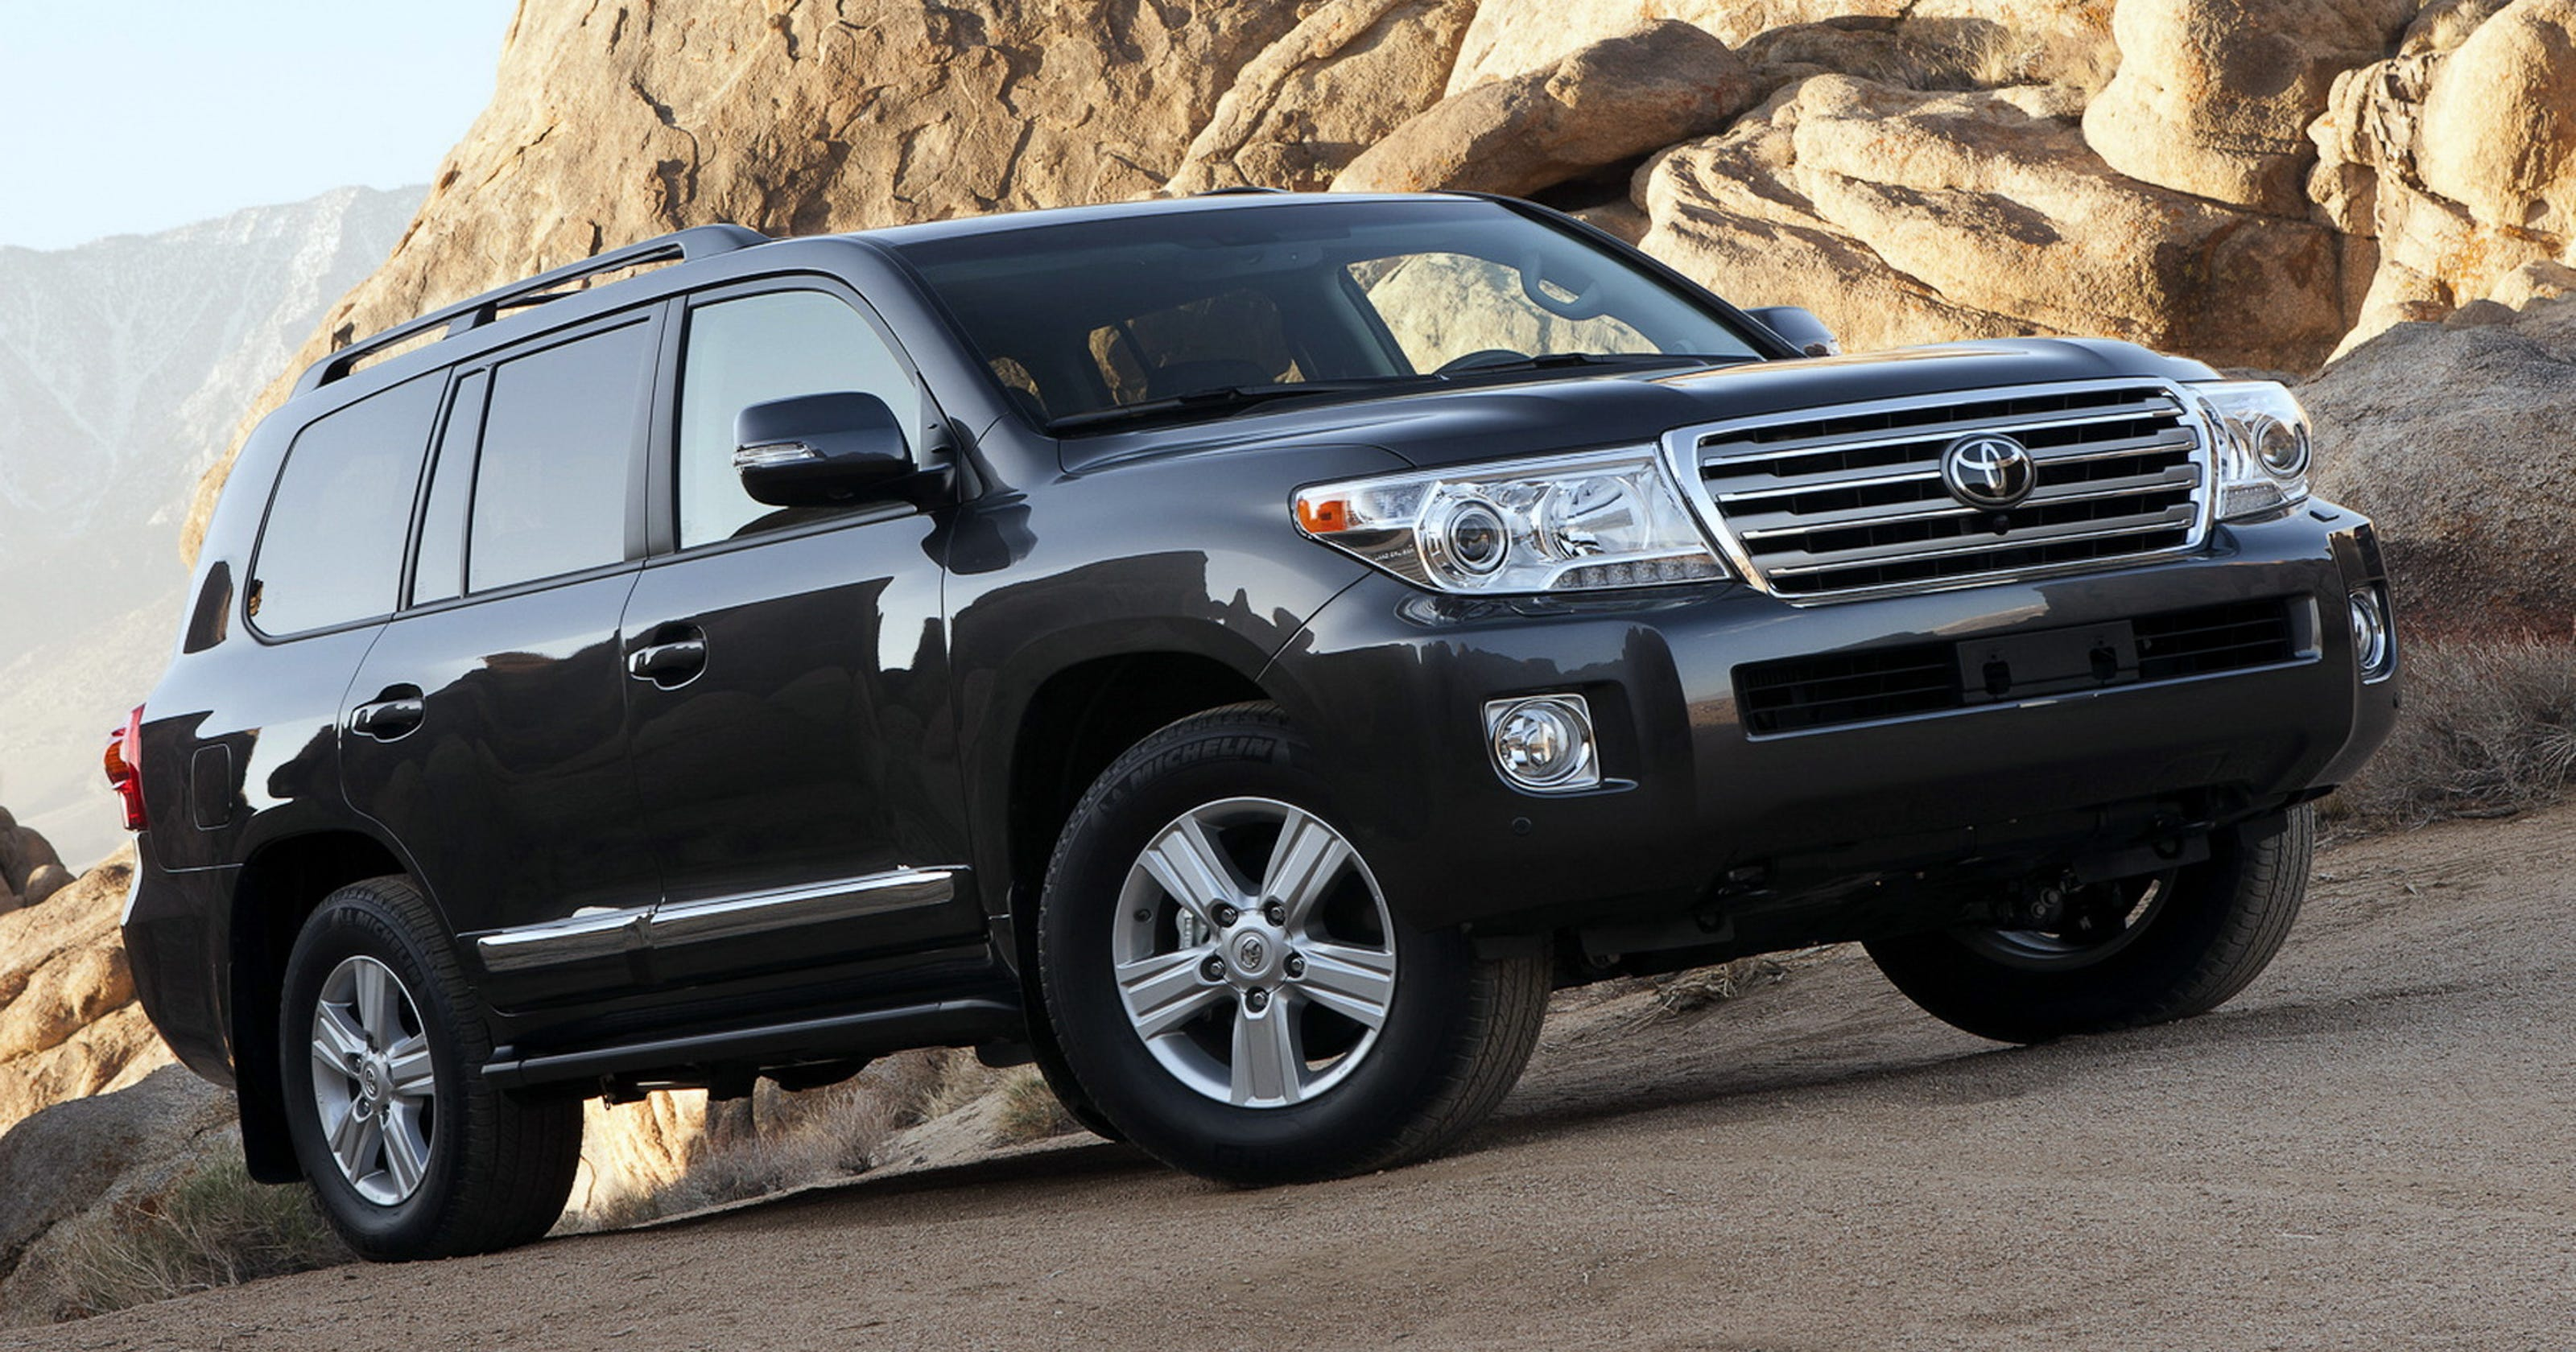 2014 Toyota Land Cruiser Not Just An Off Road Vehicle